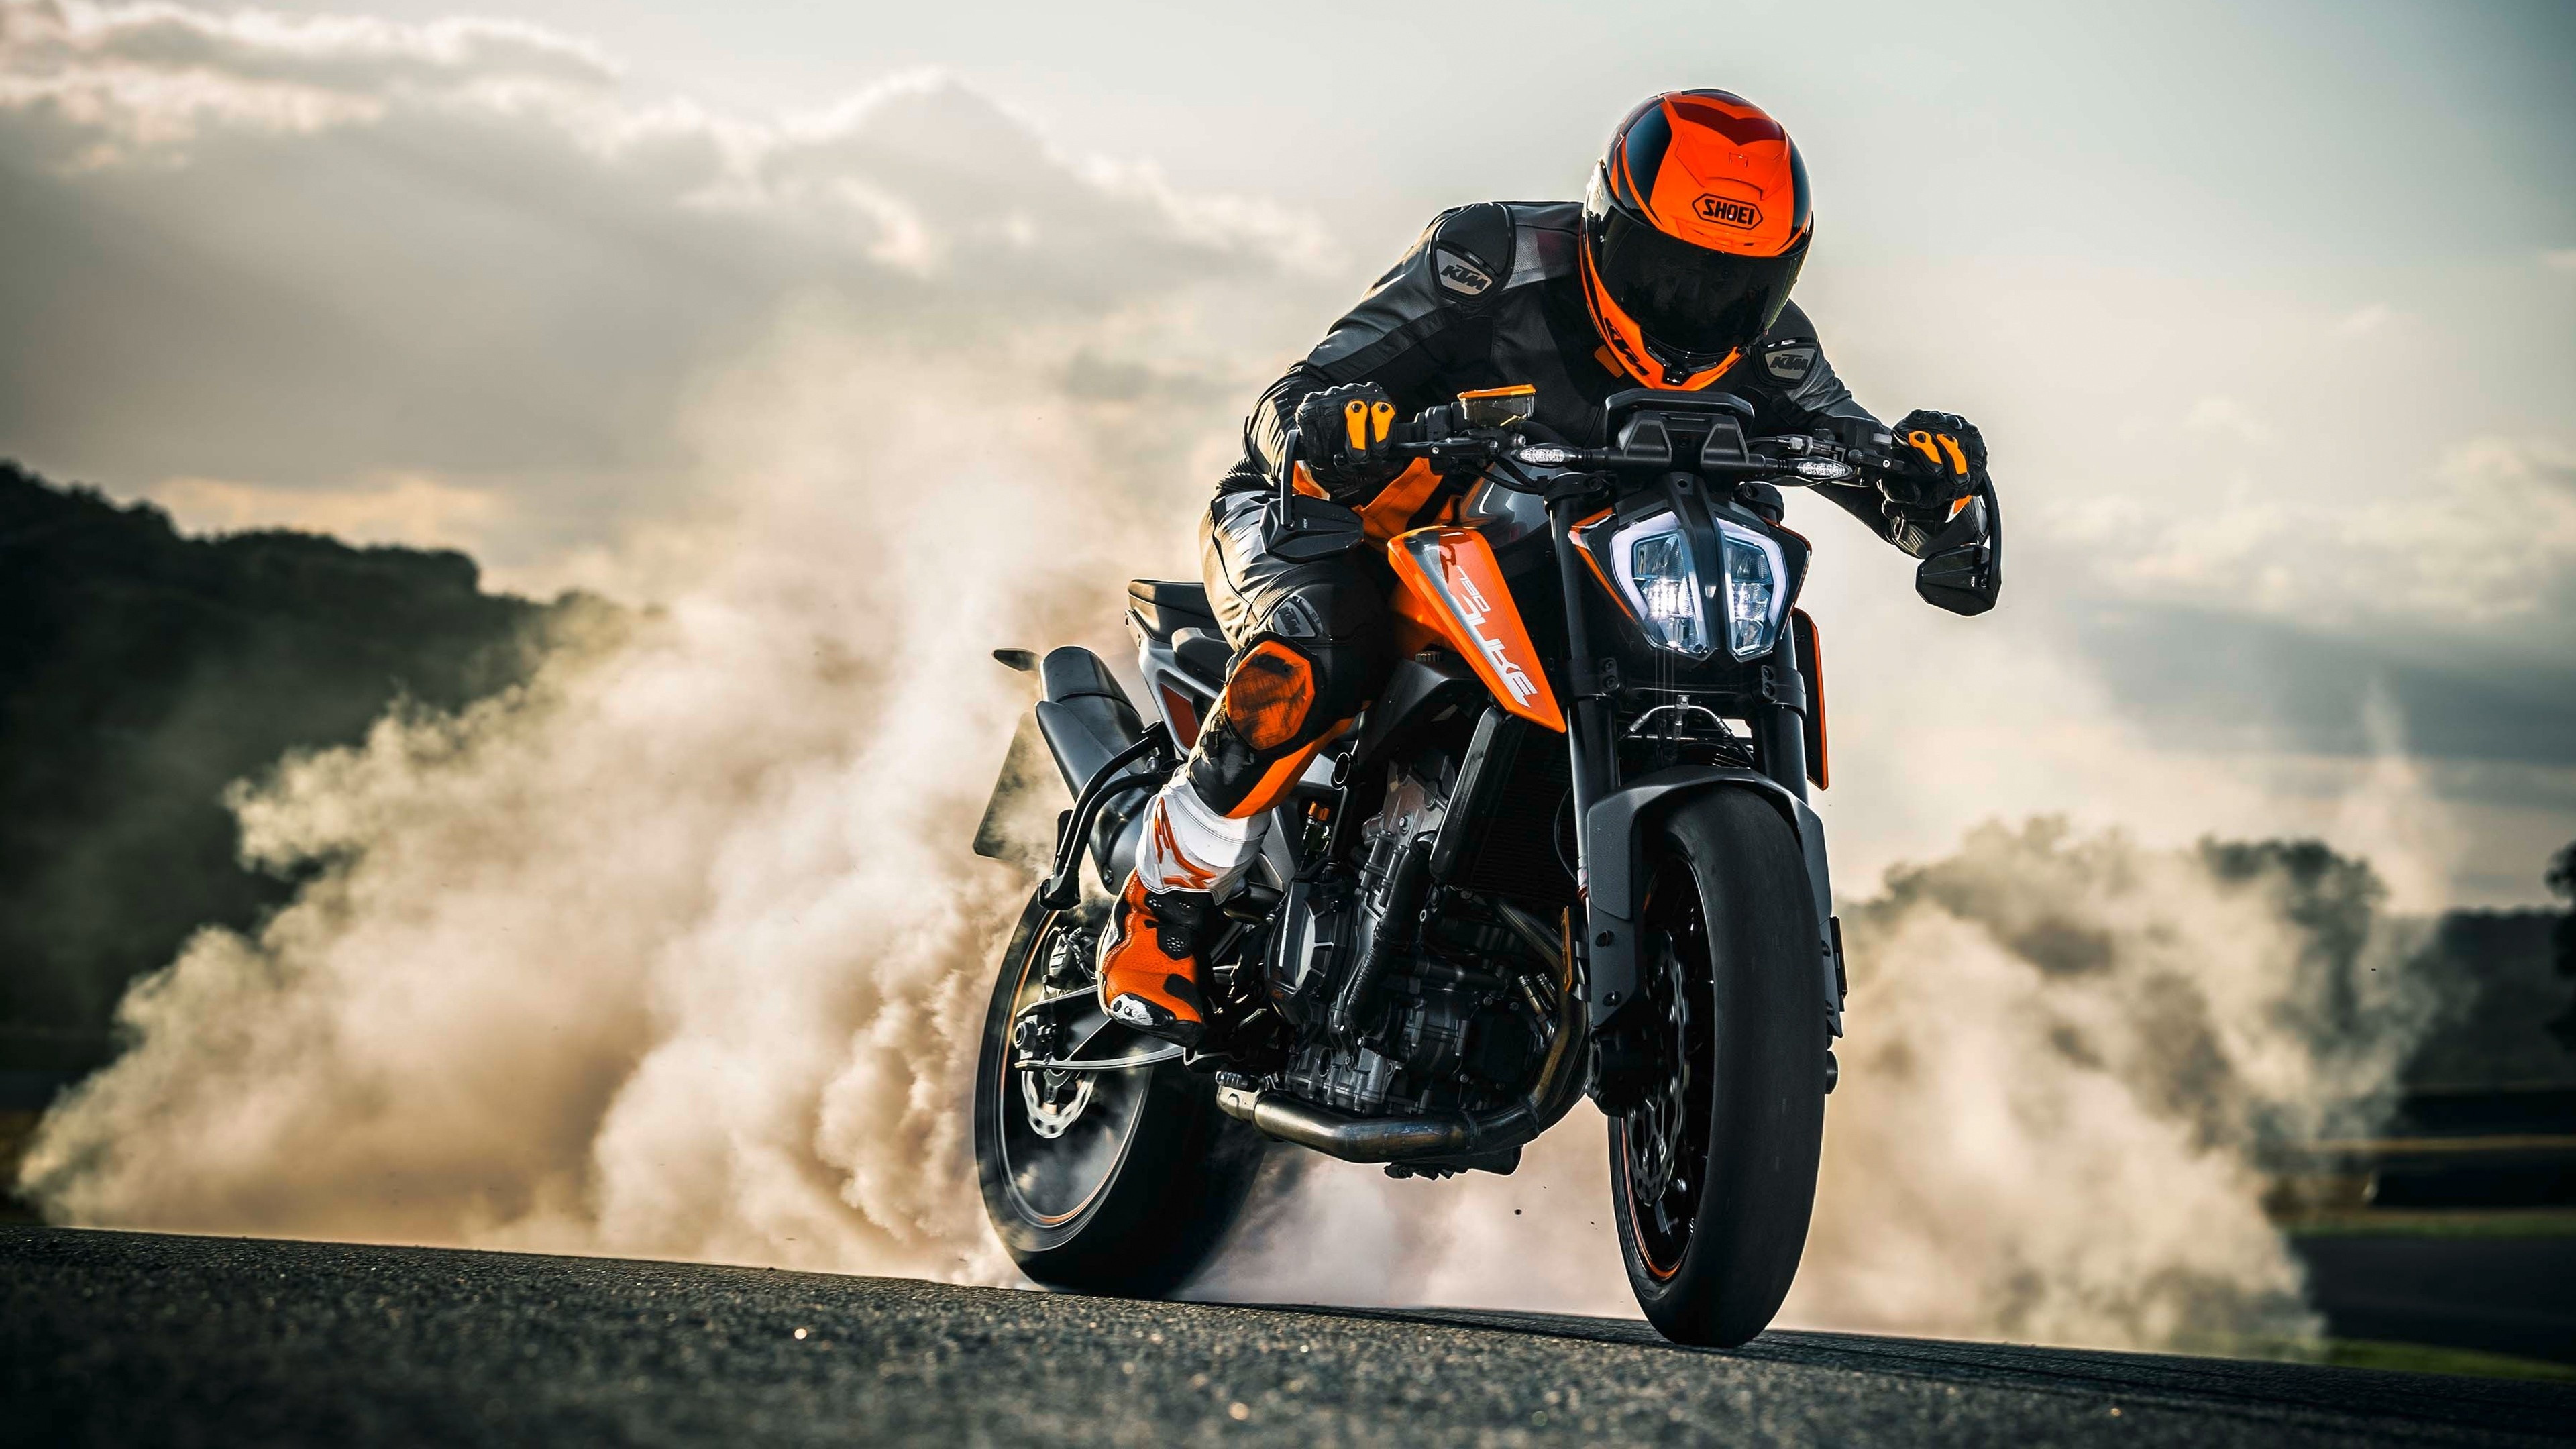 Wallpaper 4k Ktm 790 4k 4k Wallpapers Bikes Wallpapers Hd